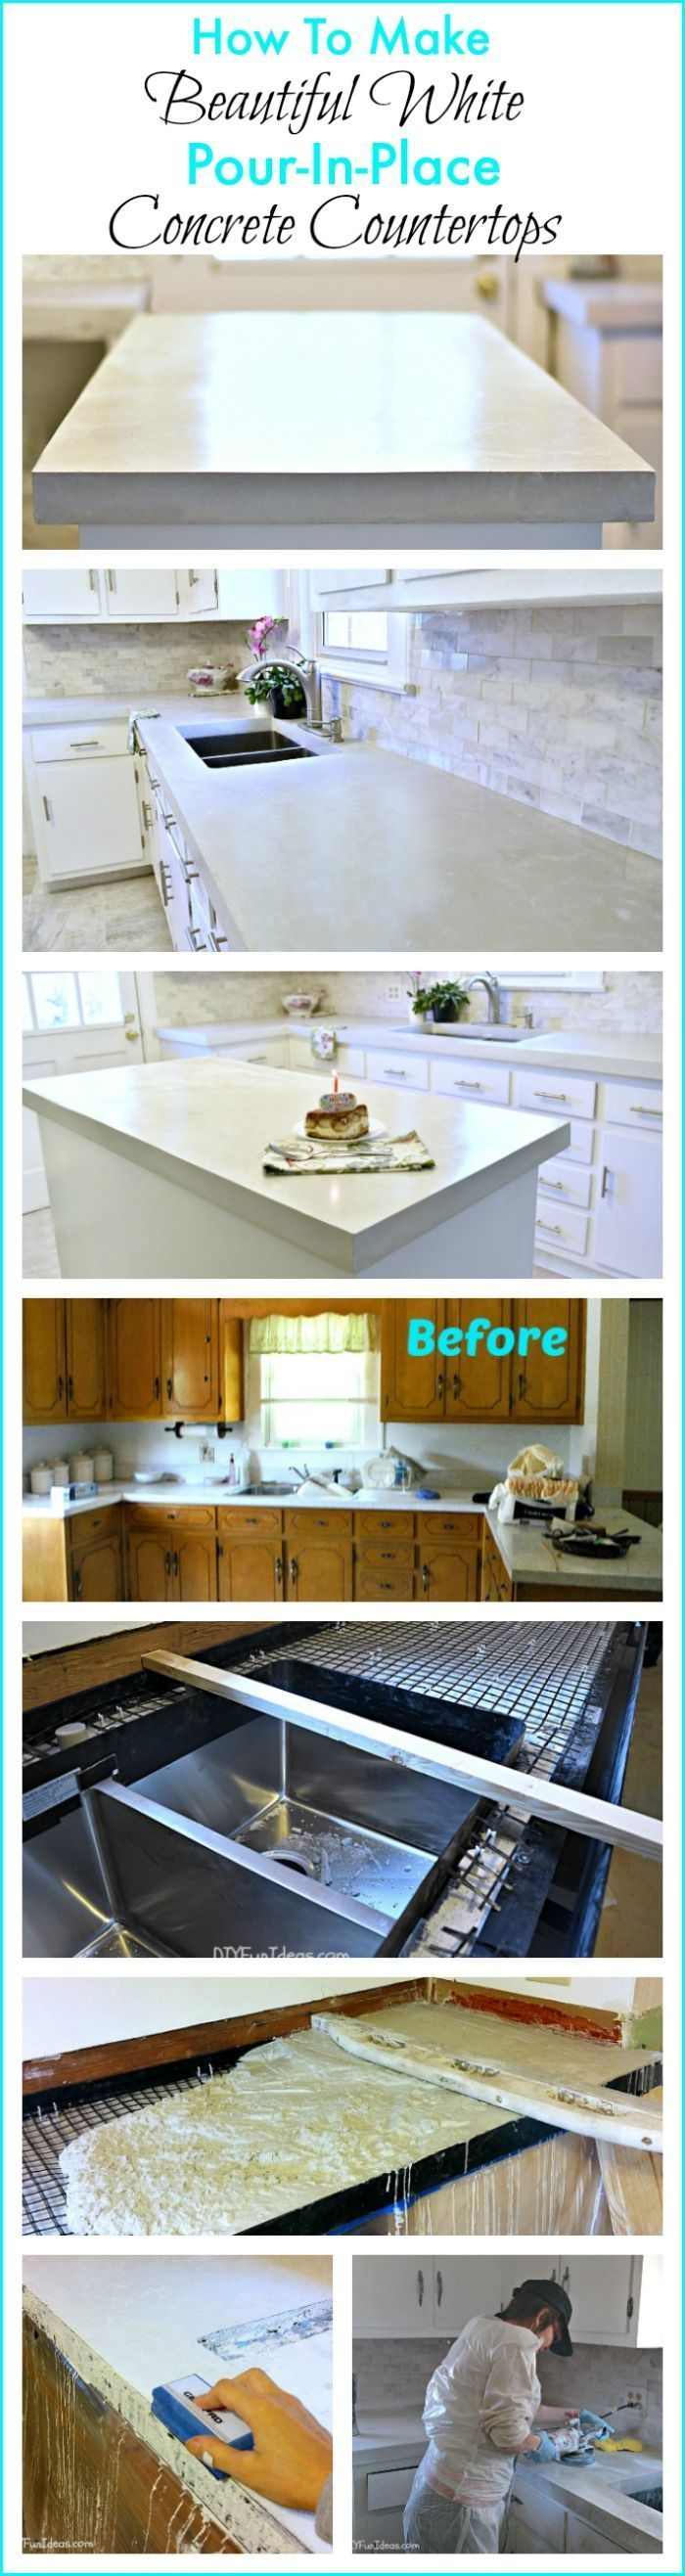 crewe designs mix white countertop concrete more formula from quikrete keith with amazing countertops j